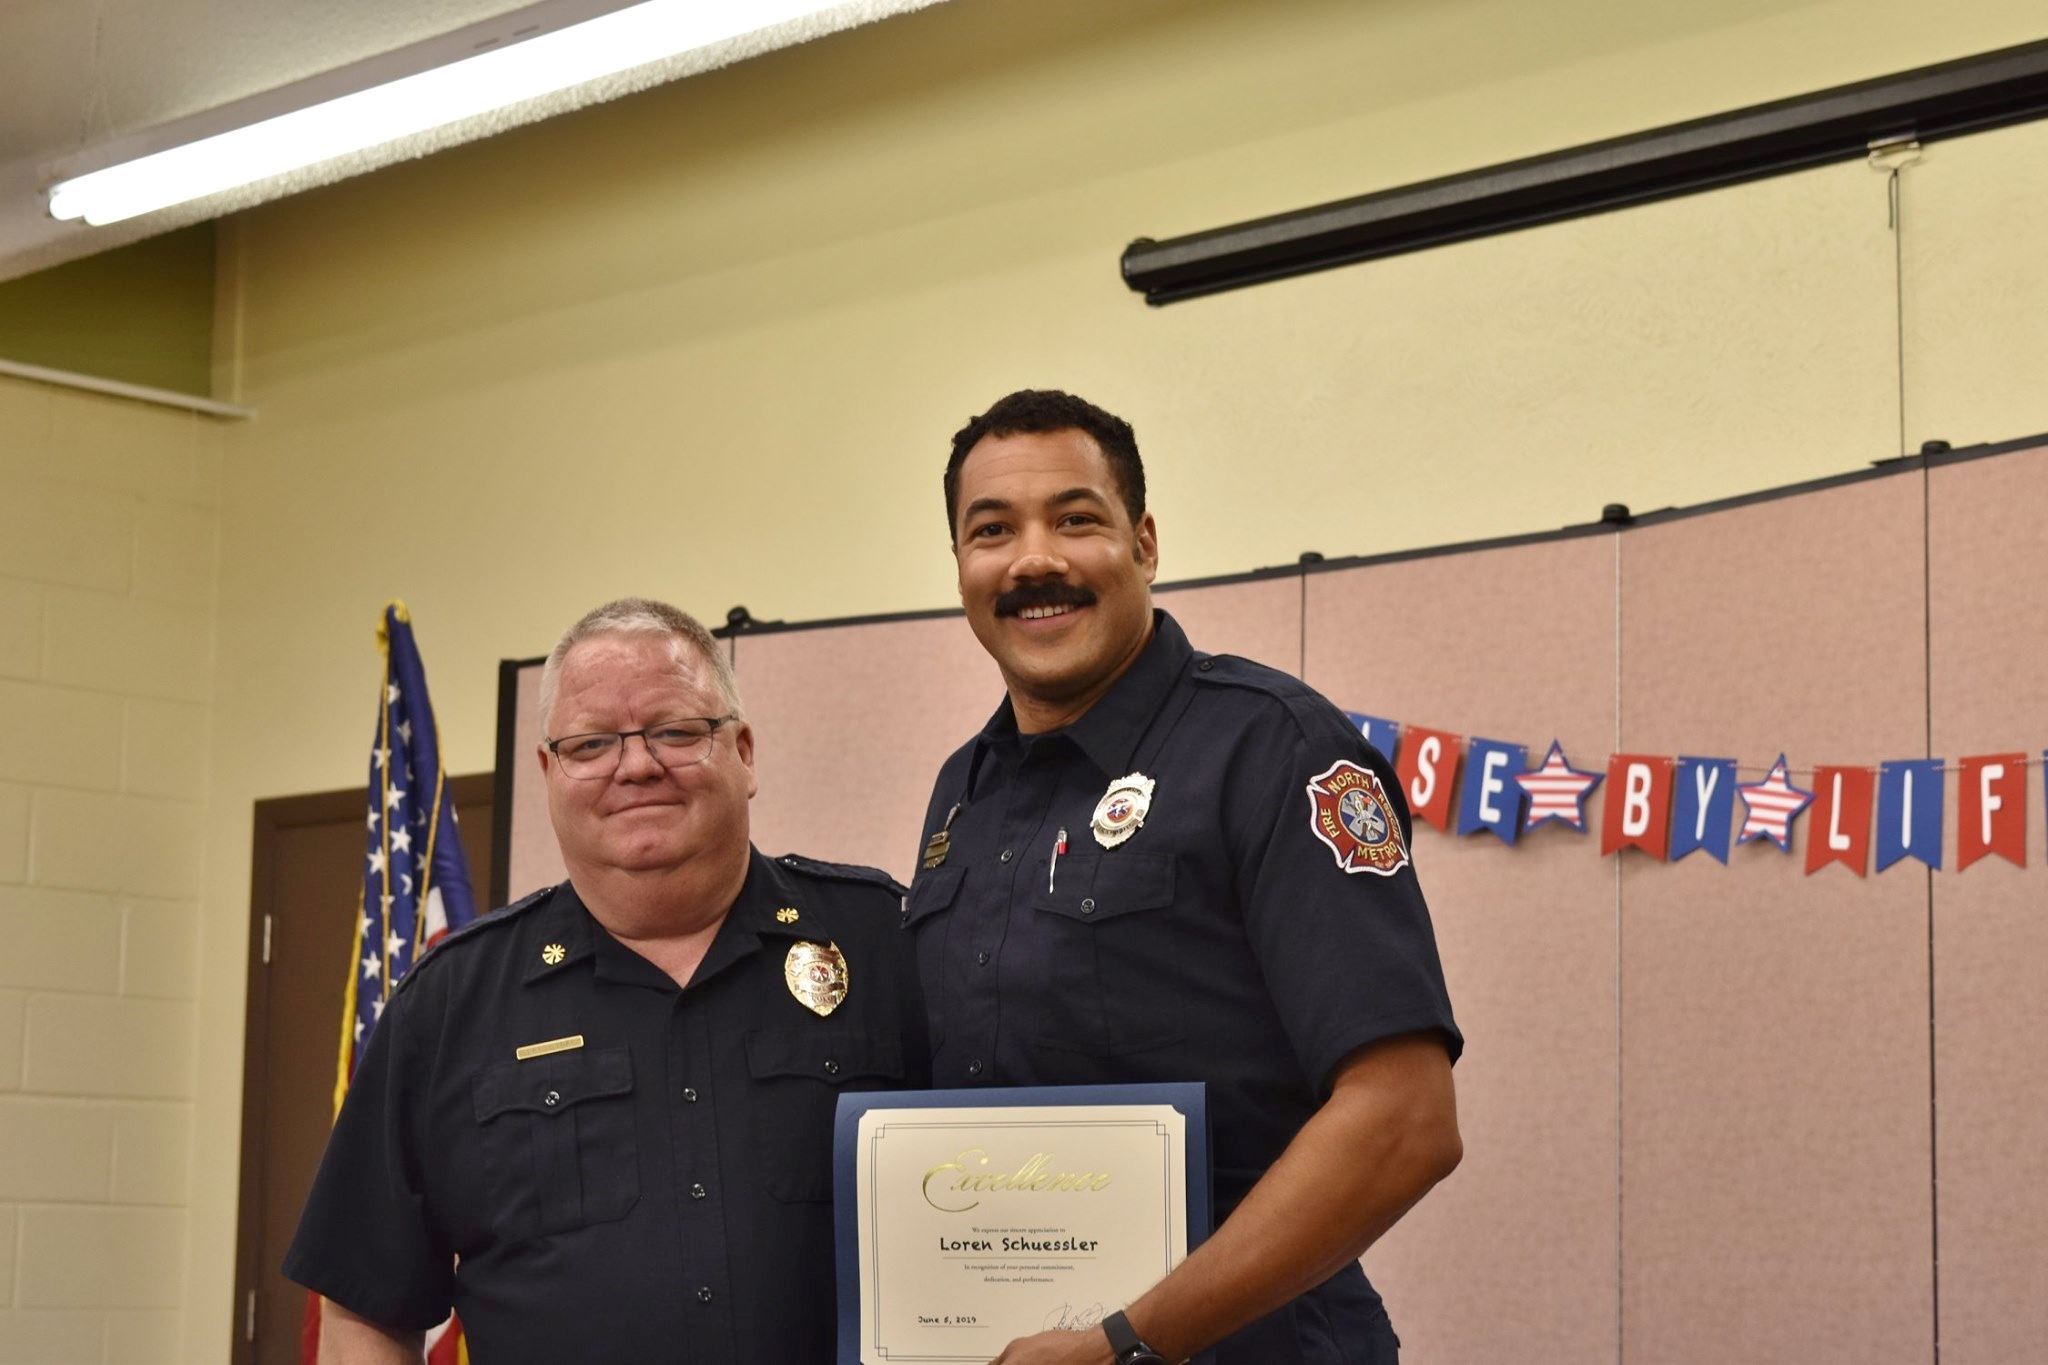 Division Chief Bybee awards Firefighter Schuessler with the Optimist Club Award